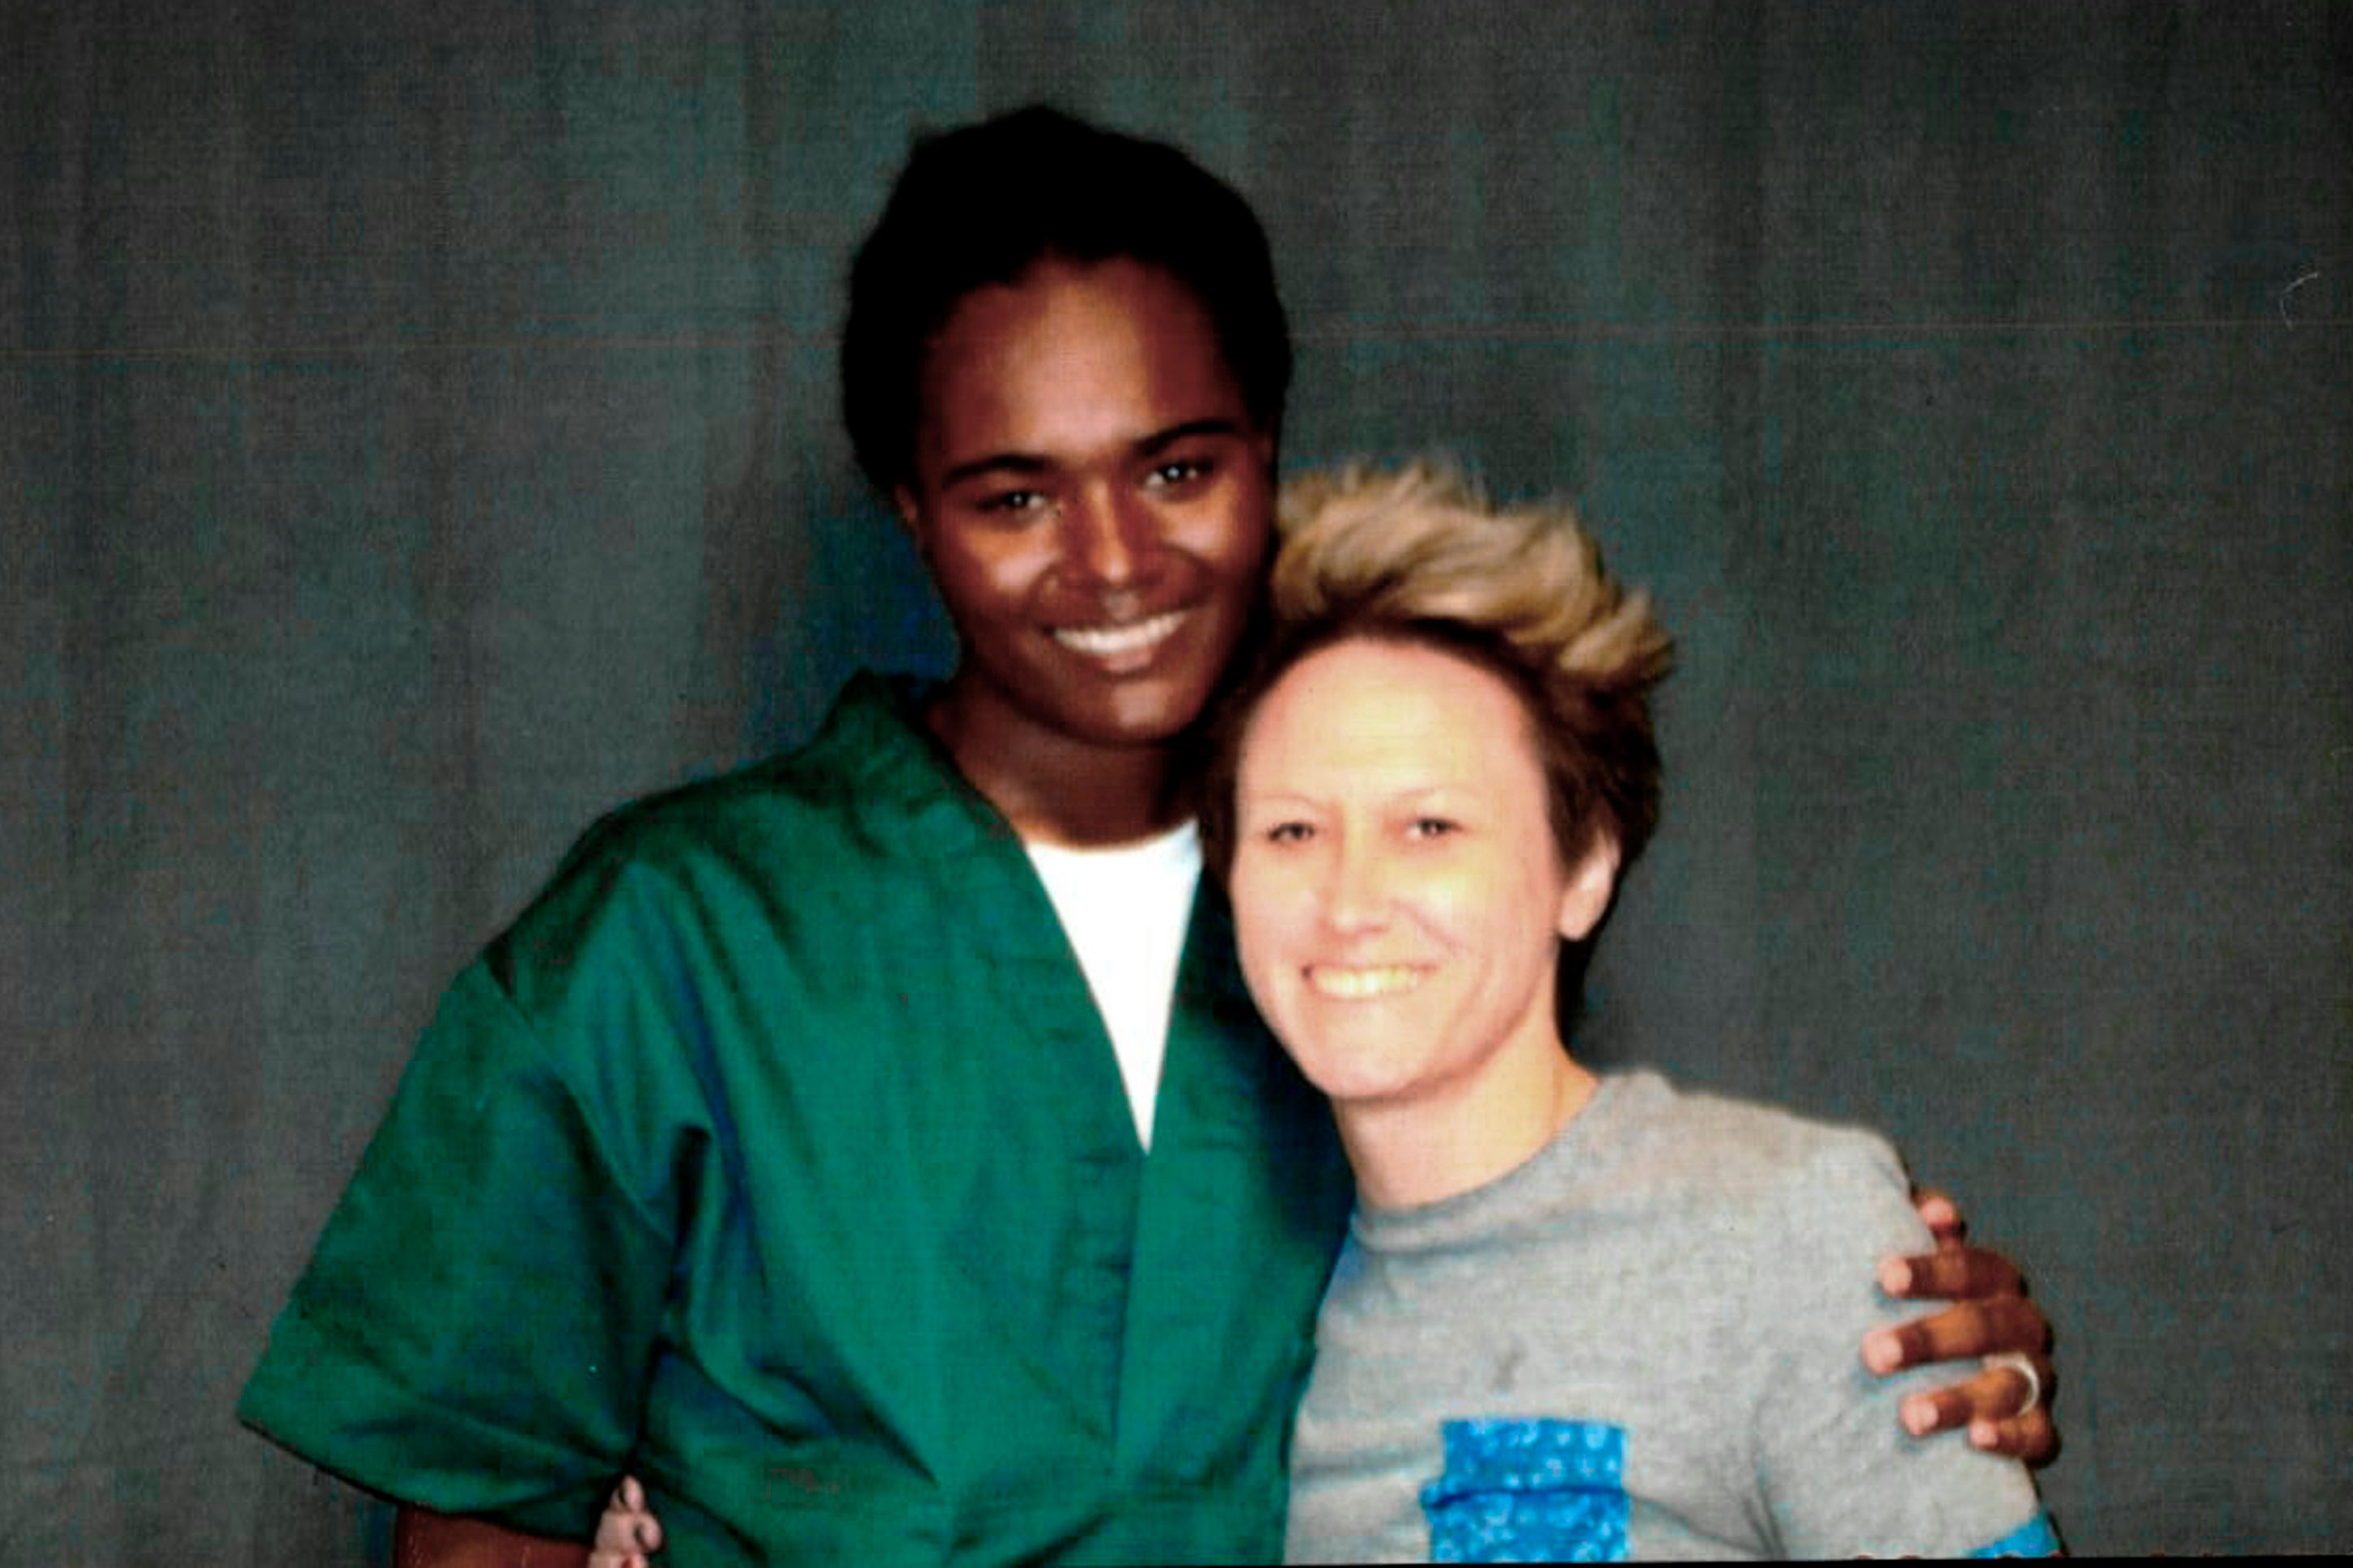 <p>This 2018 photo provided by inmate Lindsay Saunders-Velez shows her, at left, with mentor Meghan Baker at the Colorado Territorial Correctional Facility in Cañon City, Colo.</p>